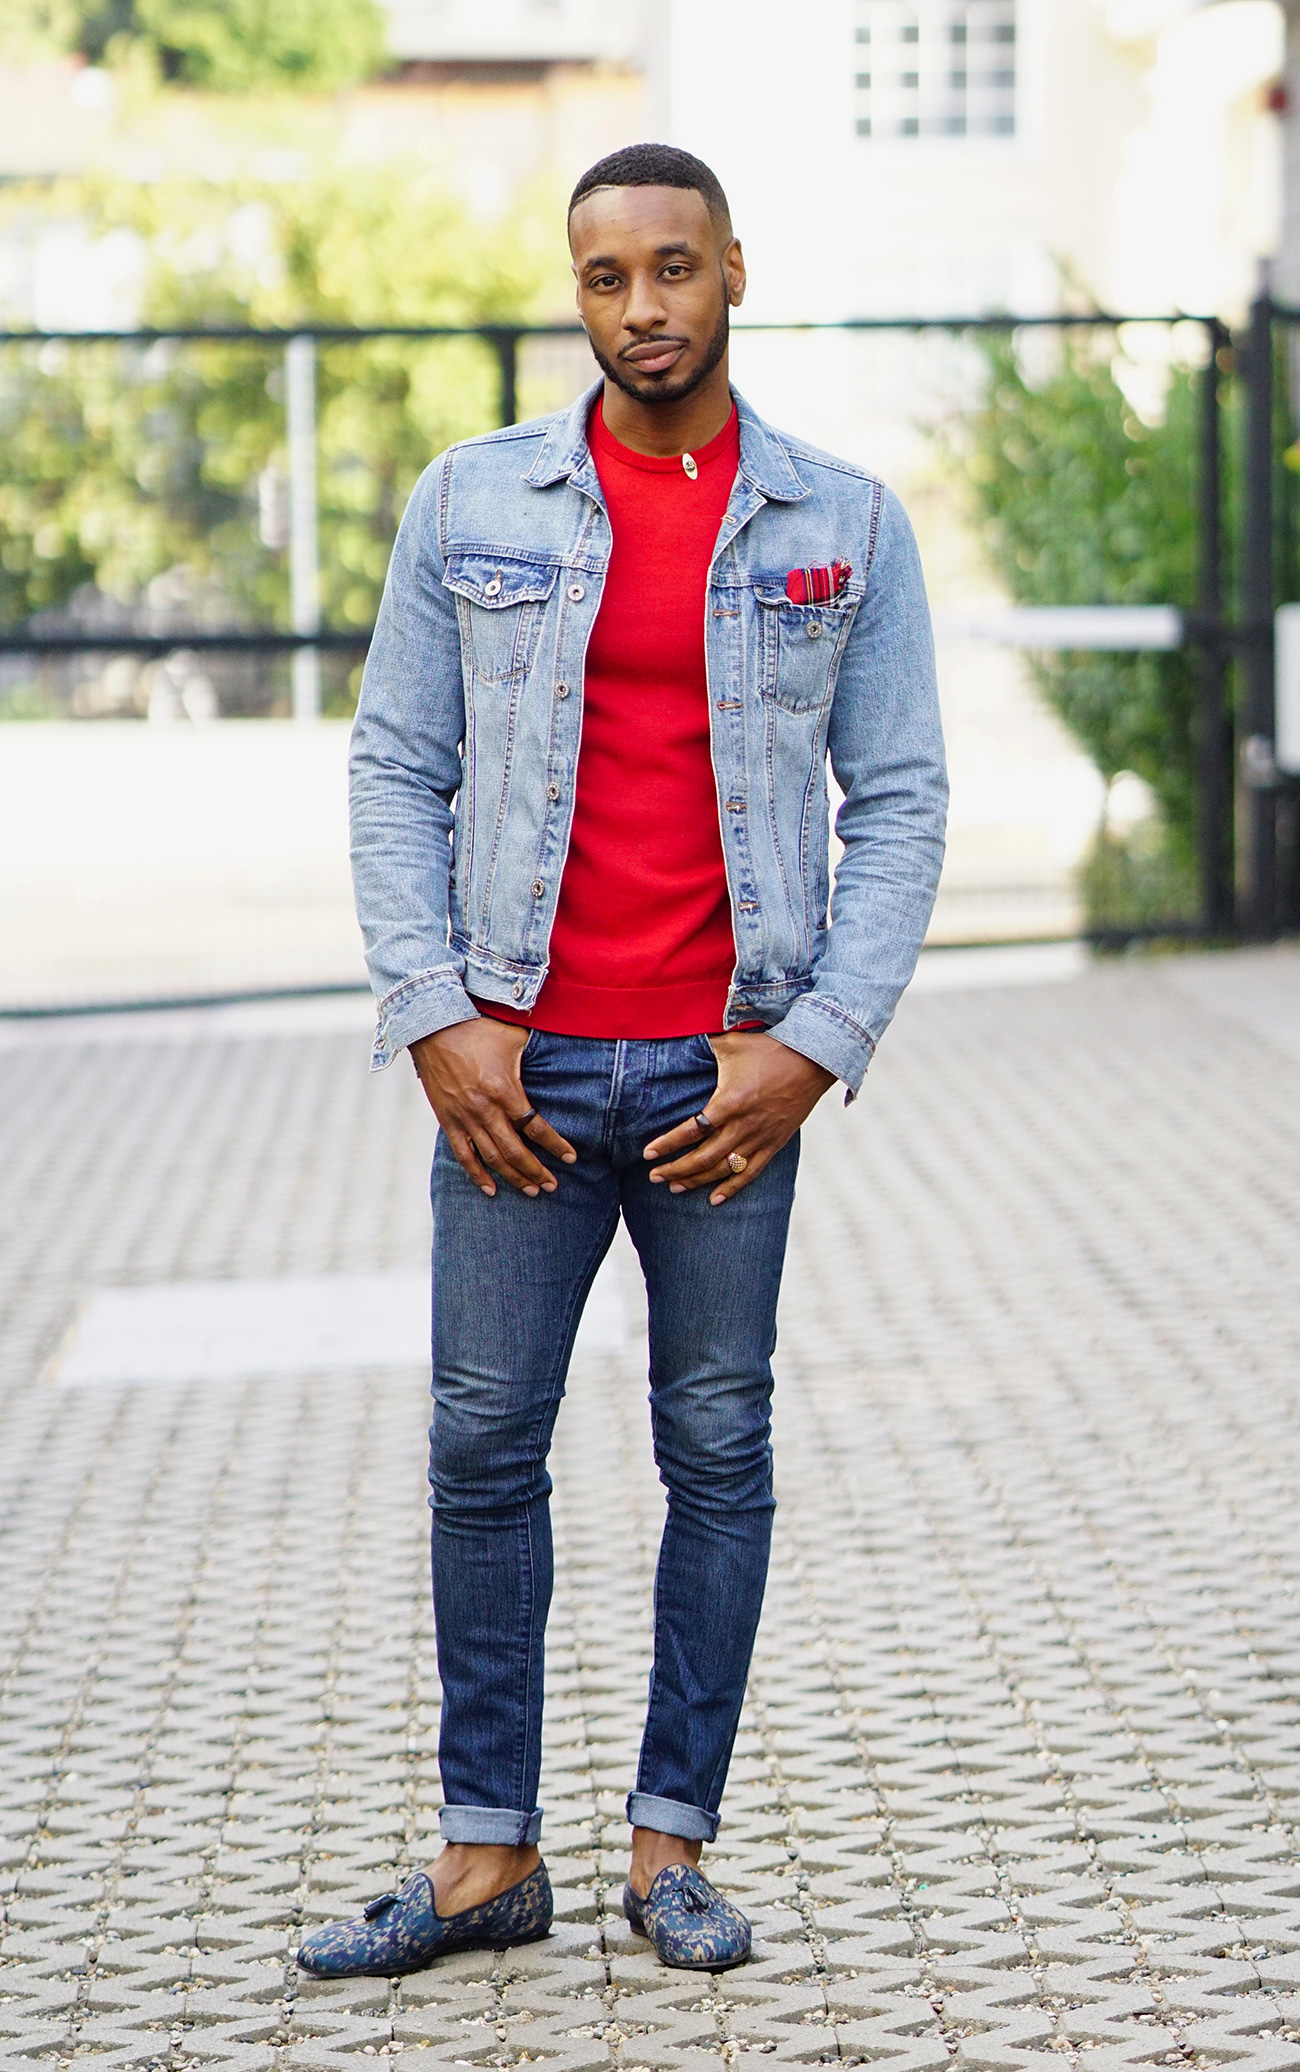 Ootd Casual Denim Outfit With Loafers Norris Danta Ford